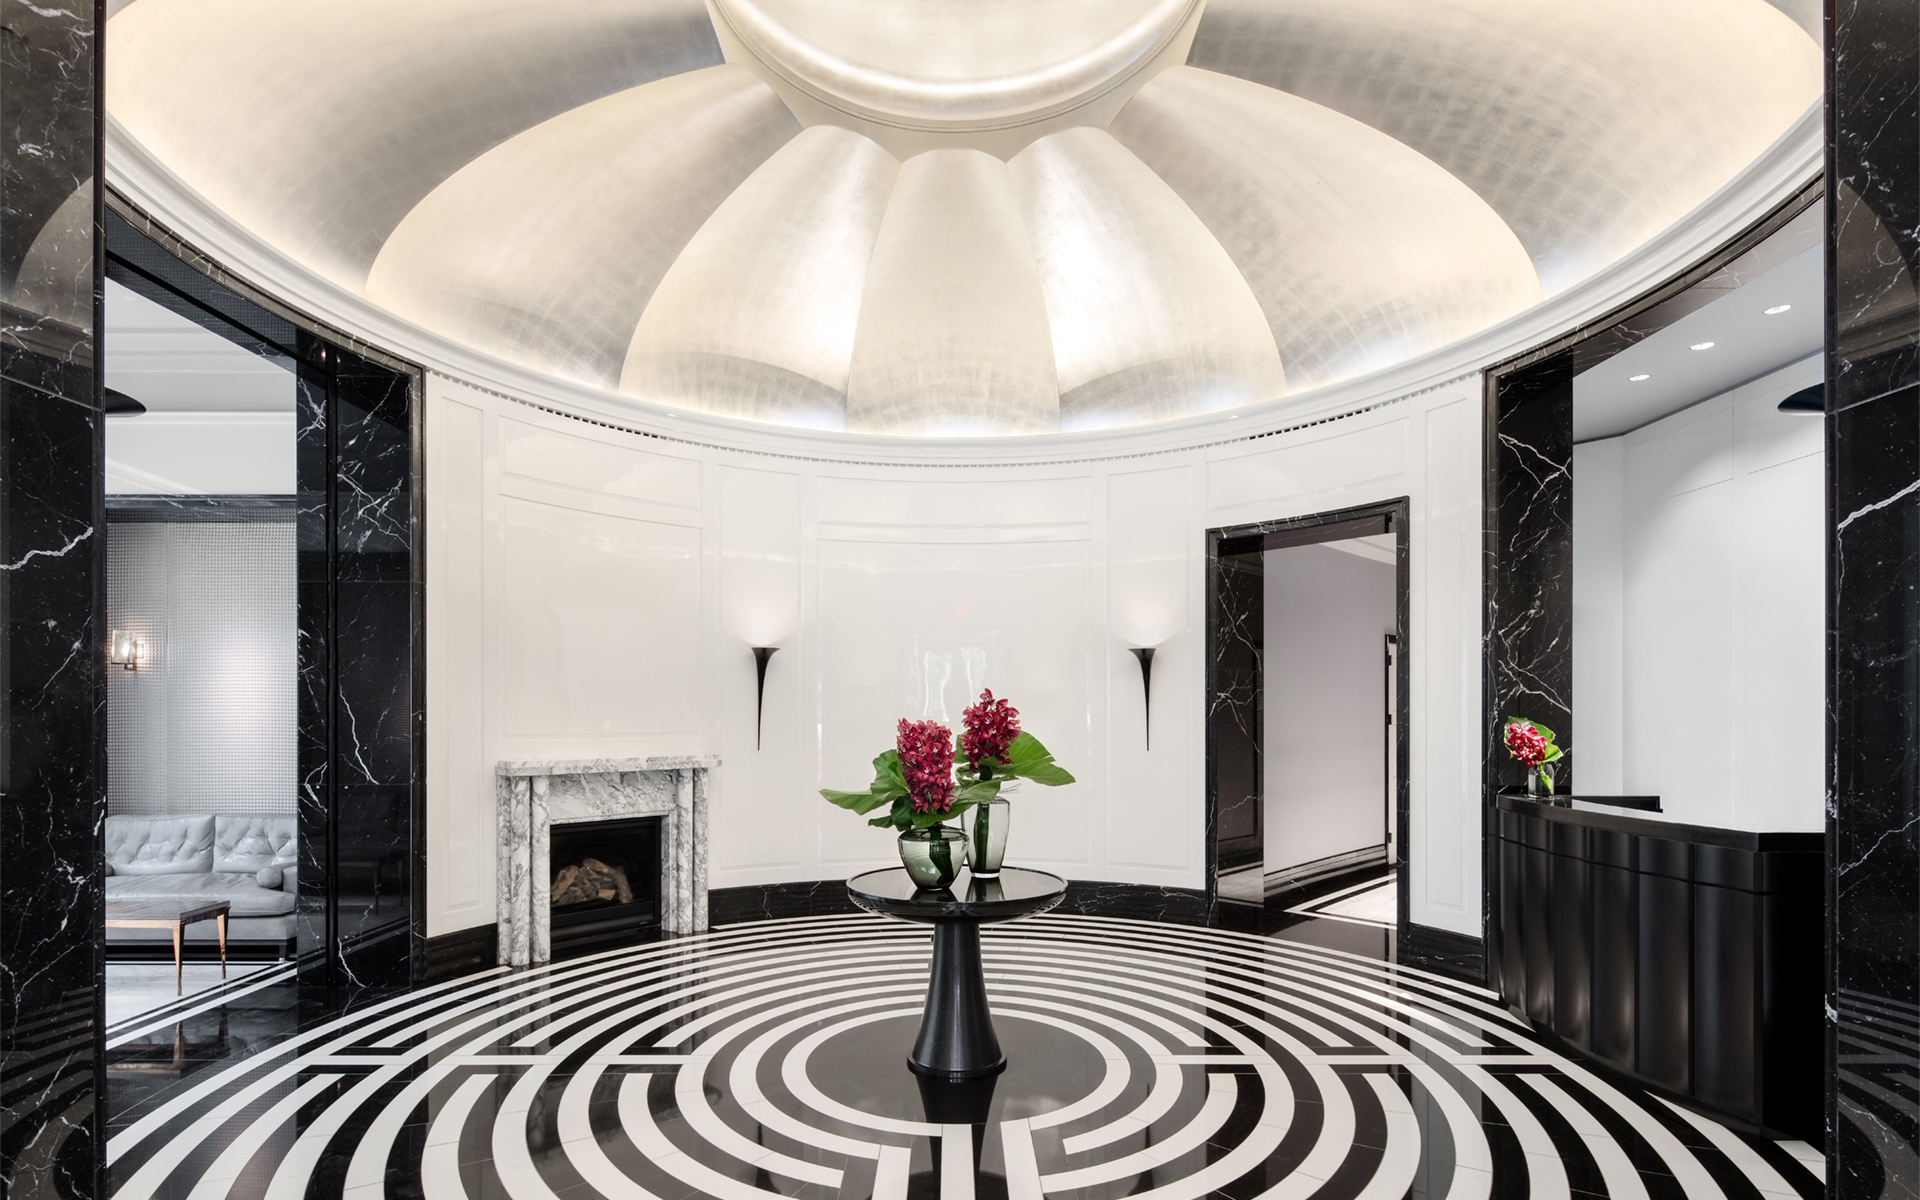 Private residential lobby with labyrinth-patterned stone floor, white lacquer walls, silver leaf rotunda ceiling, and fireplace.